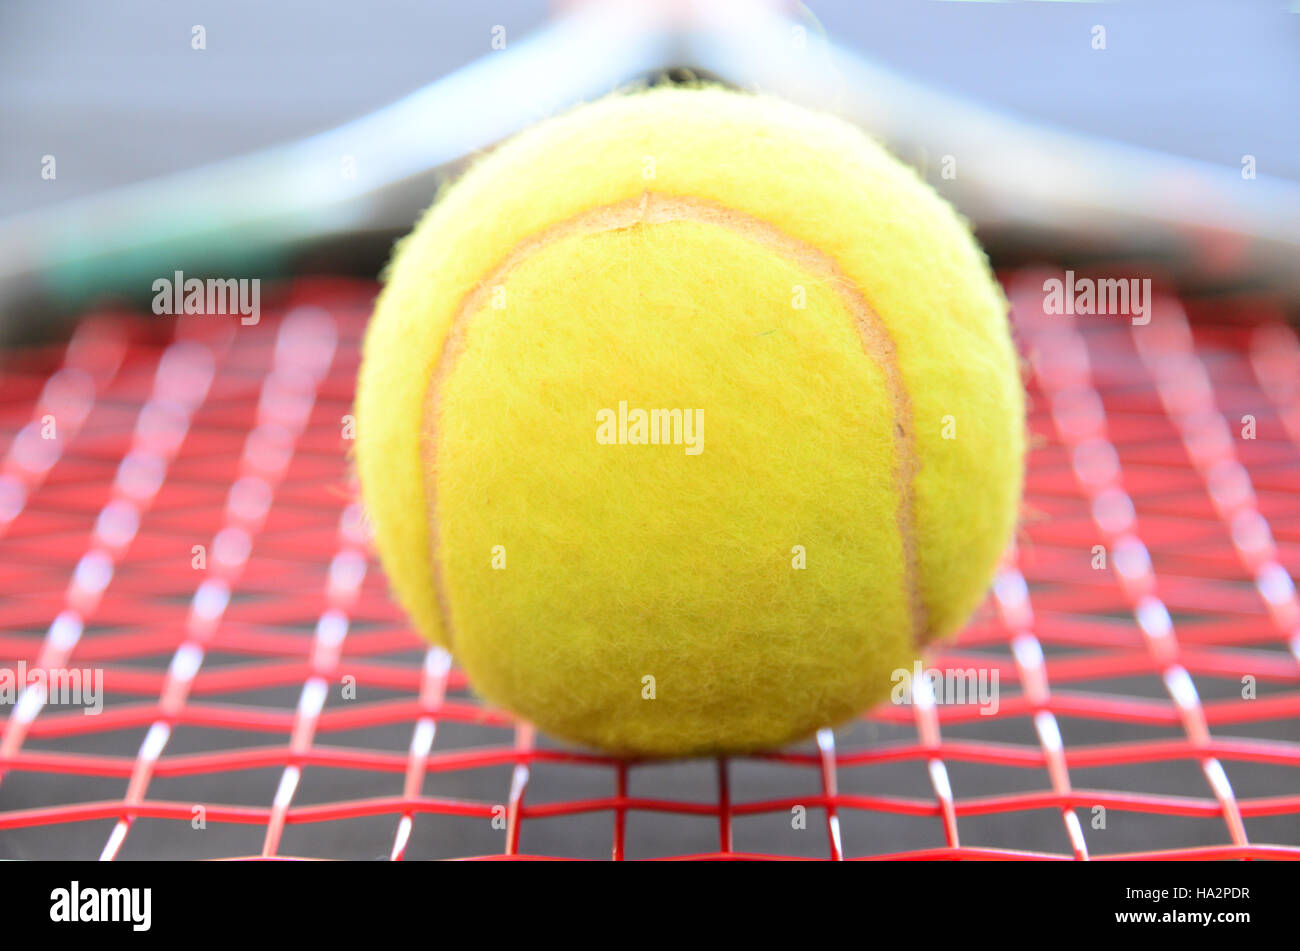 Close-up d'une balle de tennis sur une raquette de tennis Photo Stock